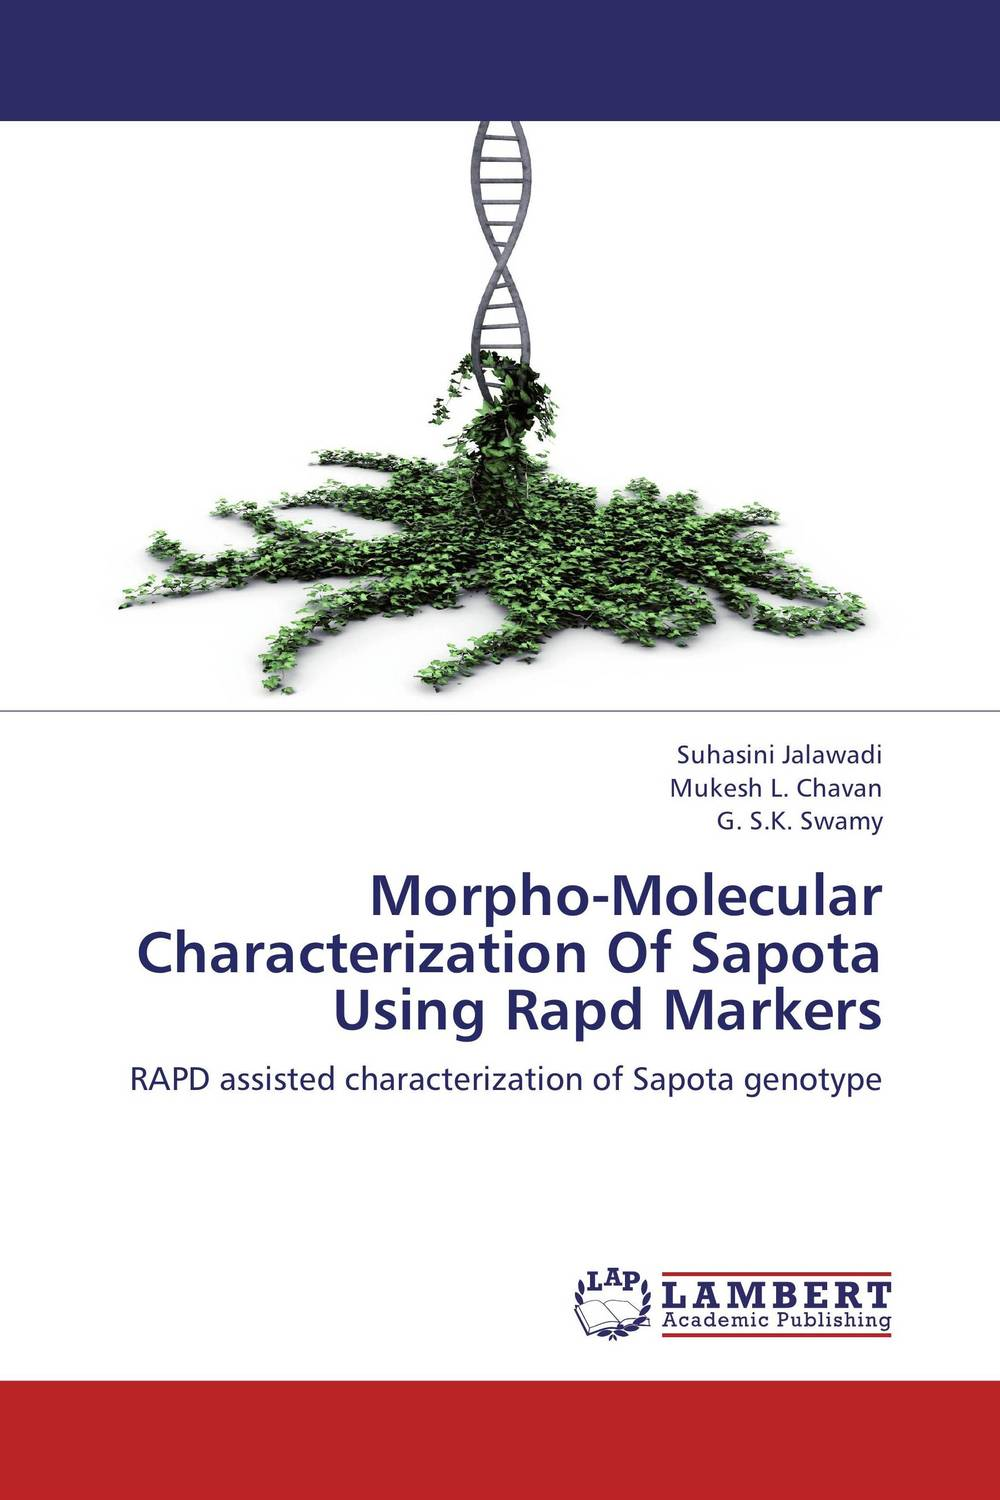 Morpho-Molecular Characterization Of Sapota Using Rapd Markers eman ibrahim el sayed abdel wahab molecular genetic characterization studies of some soybean cultivars